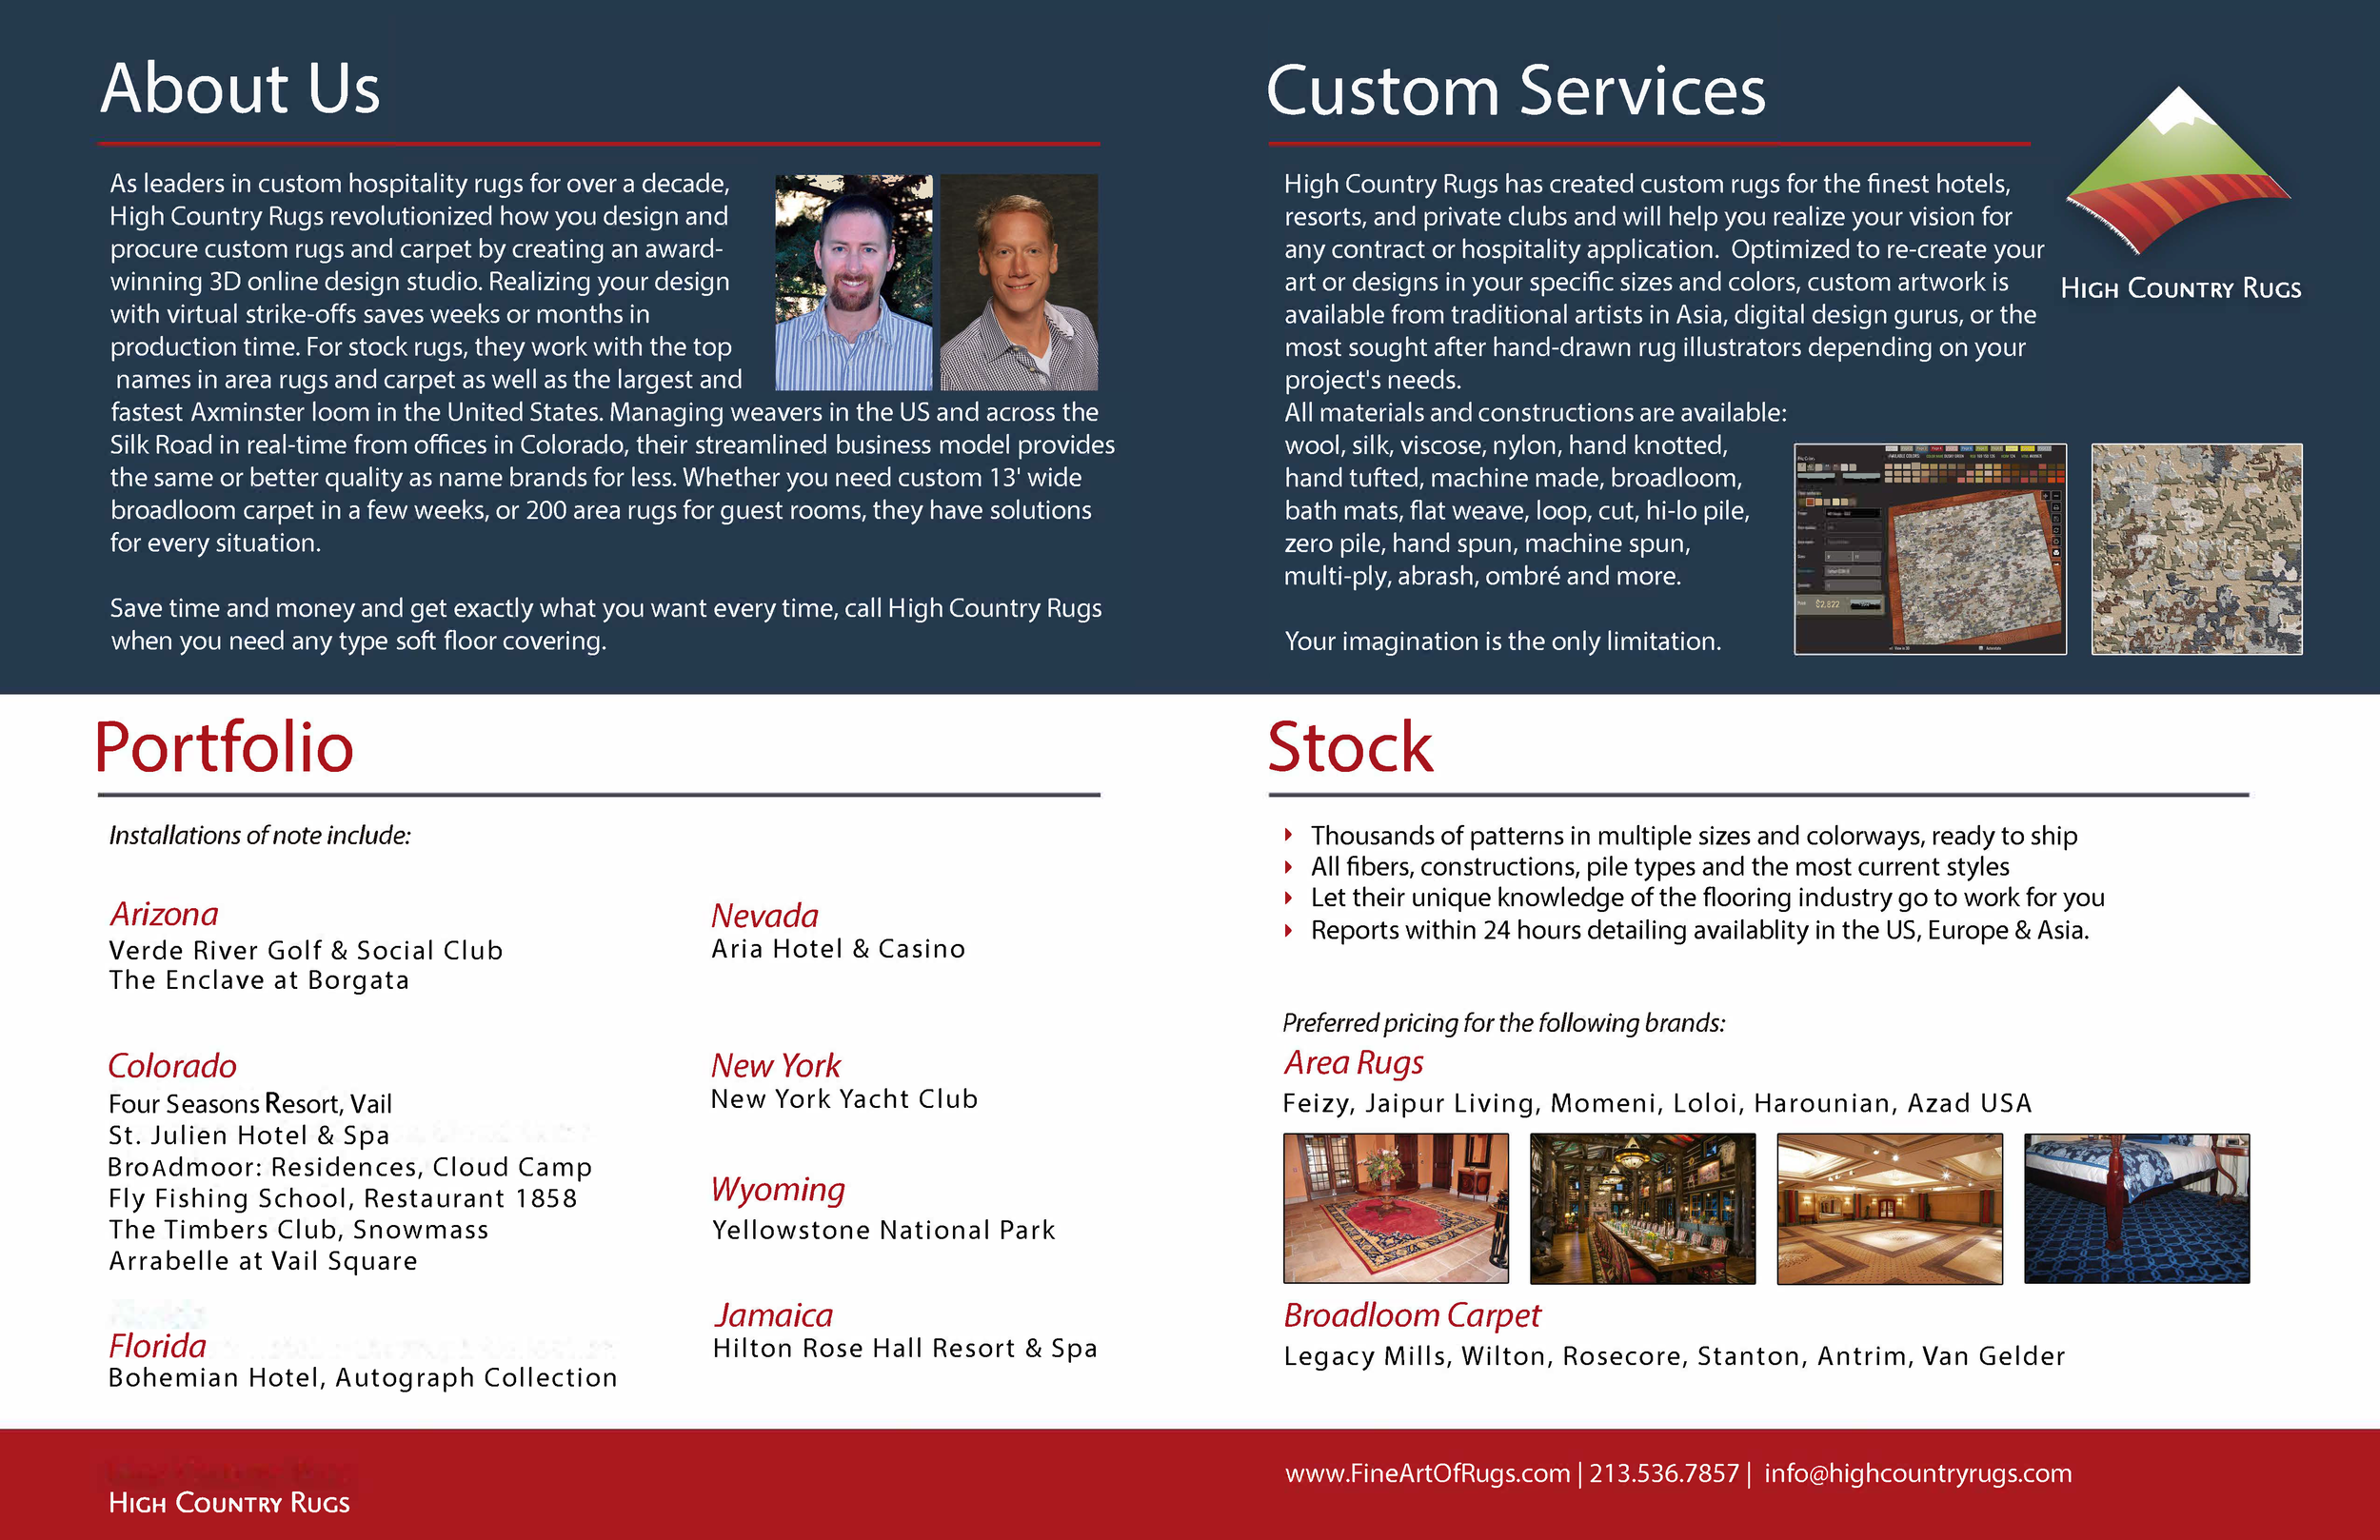 High Country Rugs Hospitality Brochure_Page_1.png